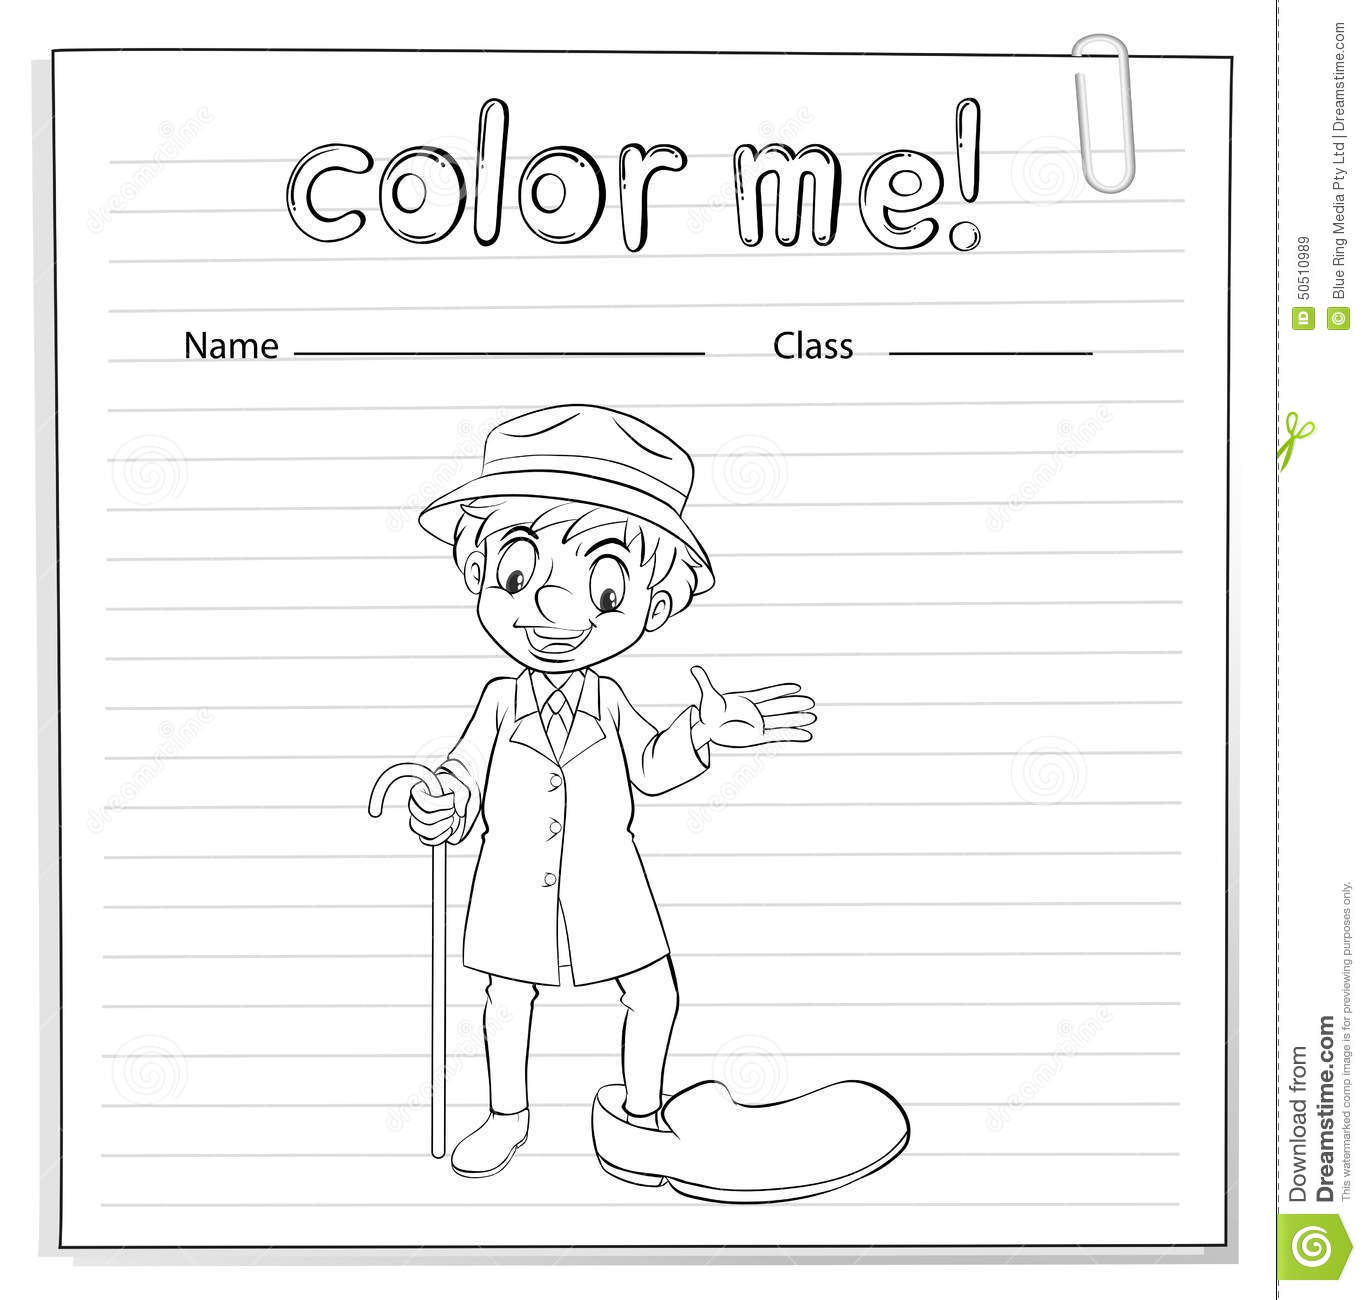 A Coloring Worksheet With A Man Stock Vector